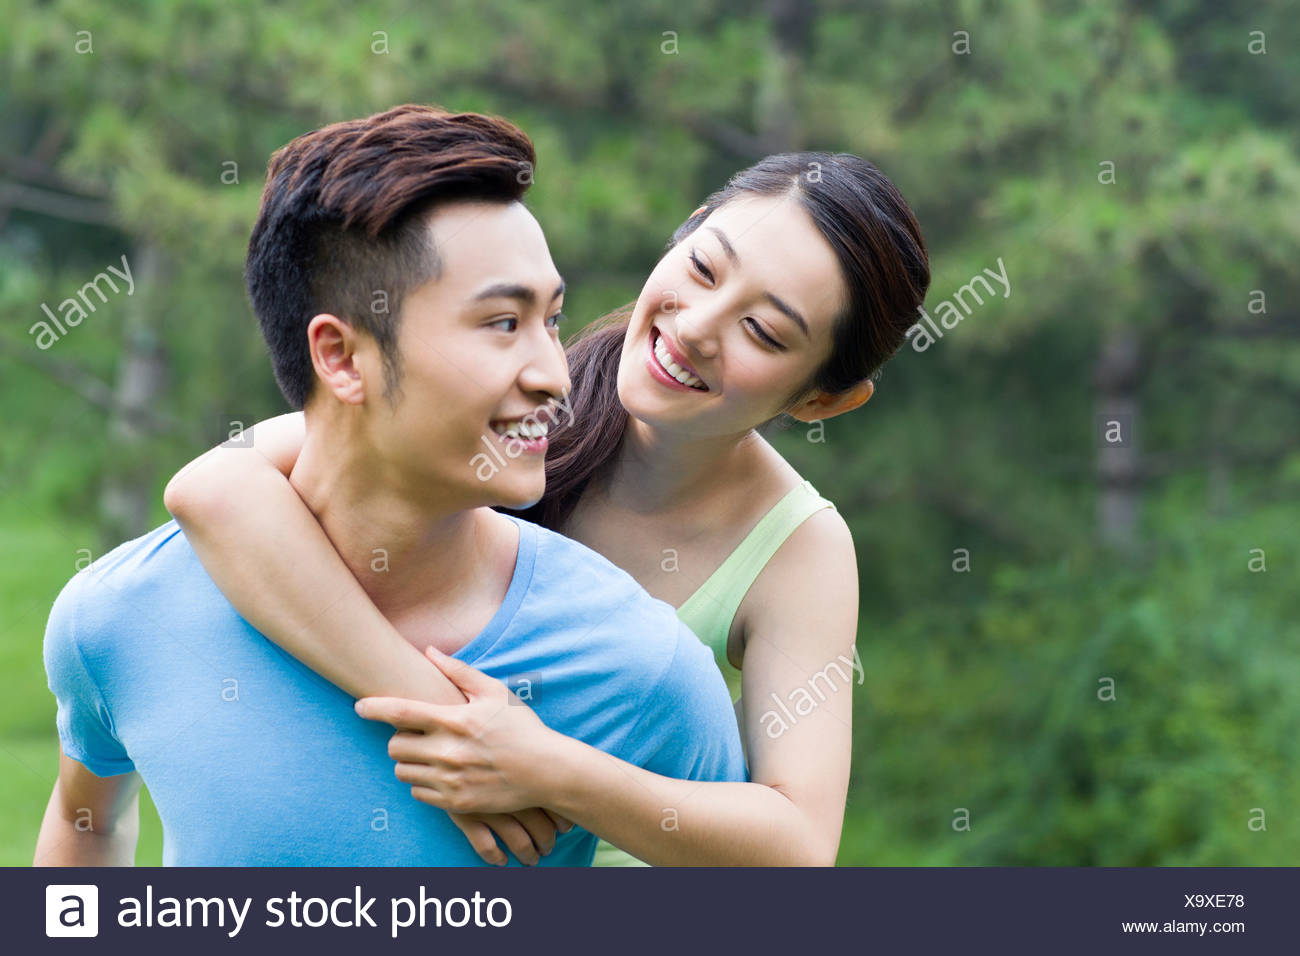 Young man giving her girlfriend a piggy back ride - Stock Image